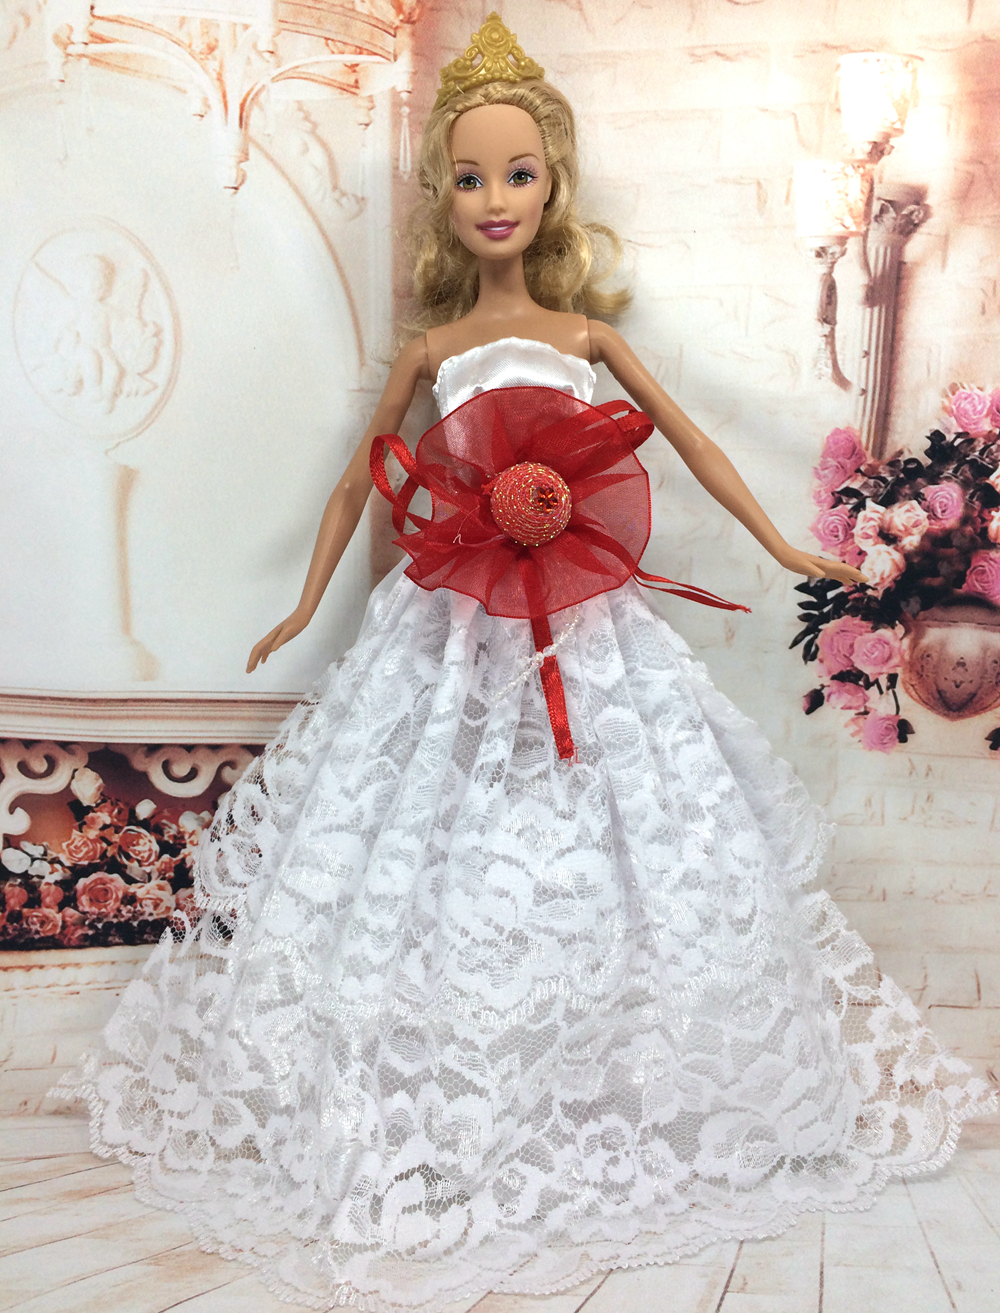 NK One Pcs Handmade Princess Wedding Dress Noble Party Gown For Barbie Doll Fashion Design Outfit Best Gift For Girl' Doll 019A